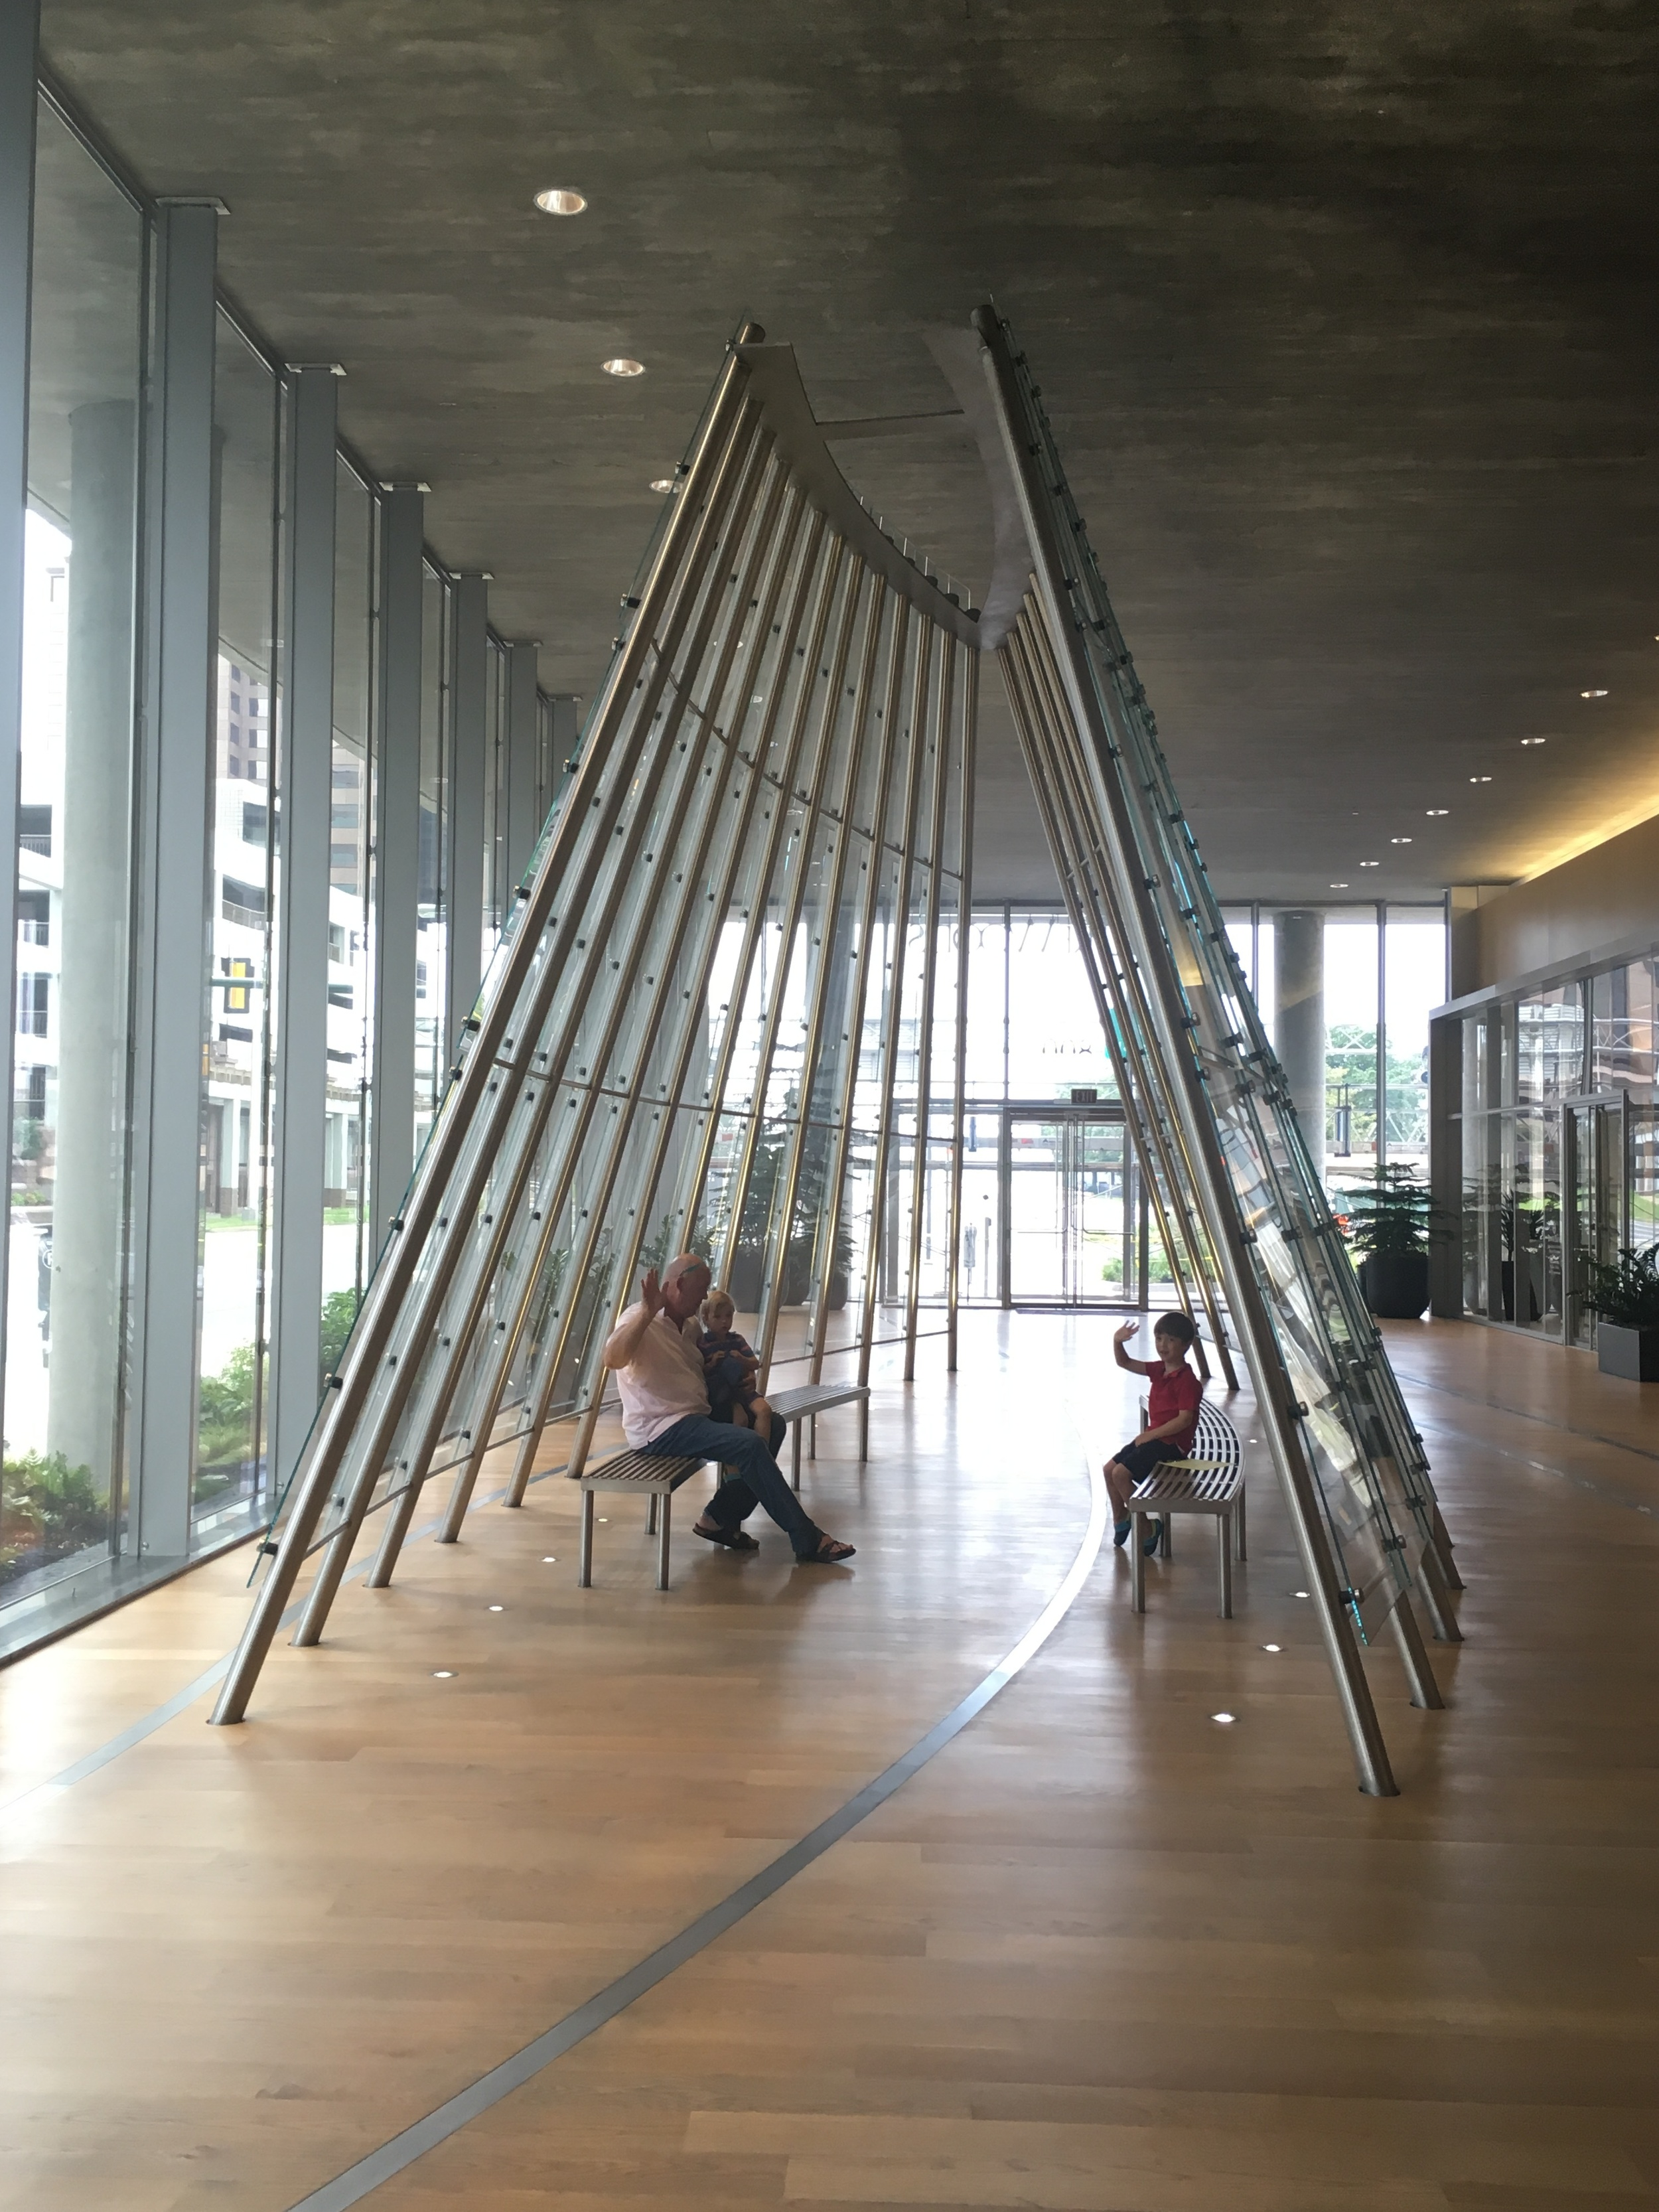 Hine family sitting and waving in  Clear Passage,  one of three elements of  Gateway Trio (2015)  in Clayco's Gateway Plaza building in Richmond, Virginia.  (Photo: Laure Tillinghast Hine)